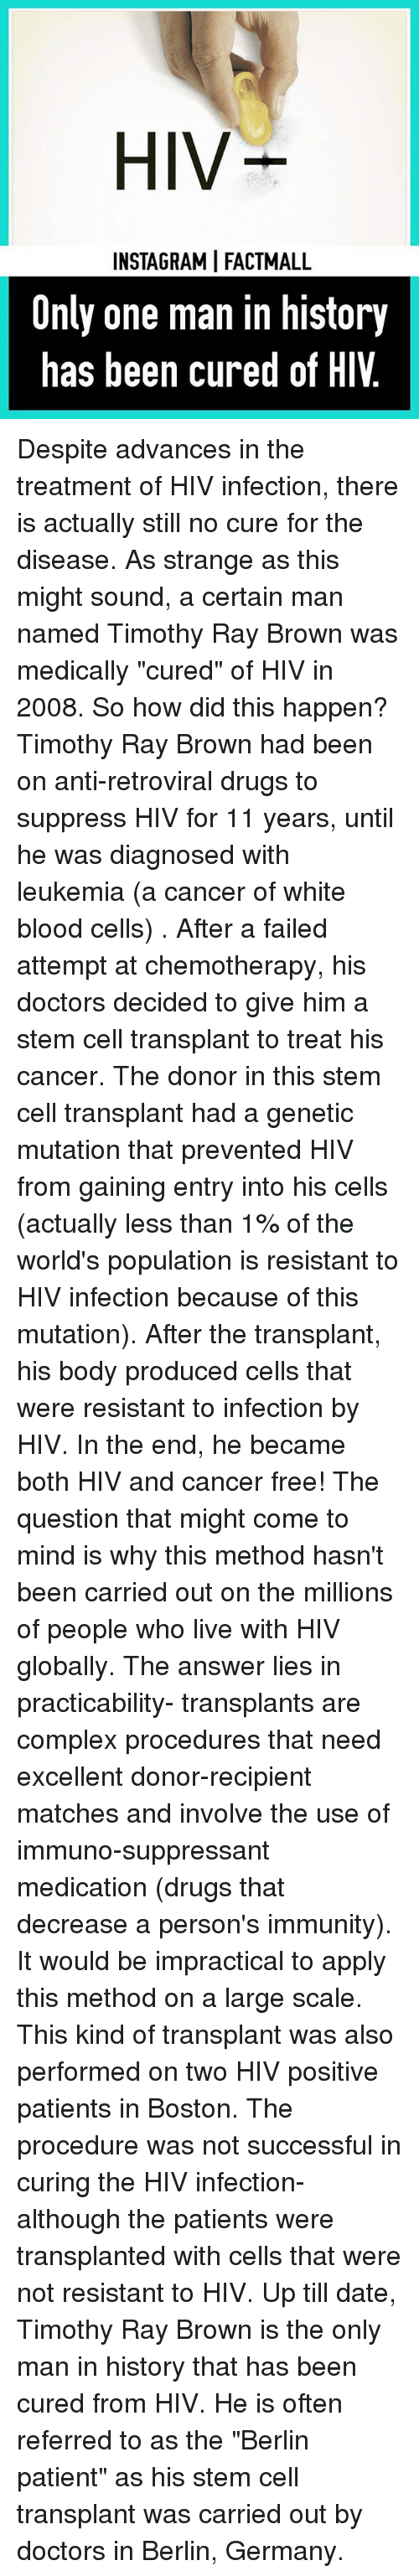 "Hiv Positive: HIV  INSTAGRAMI FACT MALL  Only one man in history  has been cured of HIV Despite advances in the treatment of HIV infection, there is actually still no cure for the disease. As strange as this might sound, a certain man named Timothy Ray Brown was medically ""cured"" of HIV in 2008. So how did this happen? Timothy Ray Brown had been on anti-retroviral drugs to suppress HIV for 11 years, until he was diagnosed with leukemia (a cancer of white blood cells) . After a failed attempt at chemotherapy, his doctors decided to give him a stem cell transplant to treat his cancer. The donor in this stem cell transplant had a genetic mutation that prevented HIV from gaining entry into his cells (actually less than 1% of the world's population is resistant to HIV infection because of this mutation). After the transplant, his body produced cells that were resistant to infection by HIV. In the end, he became both HIV and cancer free! The question that might come to mind is why this method hasn't been carried out on the millions of people who live with HIV globally. The answer lies in practicability- transplants are complex procedures that need excellent donor-recipient matches and involve the use of immuno-suppressant medication (drugs that decrease a person's immunity). It would be impractical to apply this method on a large scale. This kind of transplant was also performed on two HIV positive patients in Boston. The procedure was not successful in curing the HIV infection- although the patients were transplanted with cells that were not resistant to HIV. Up till date, Timothy Ray Brown is the only man in history that has been cured from HIV. He is often referred to as the ""Berlin patient"" as his stem cell transplant was carried out by doctors in Berlin, Germany."